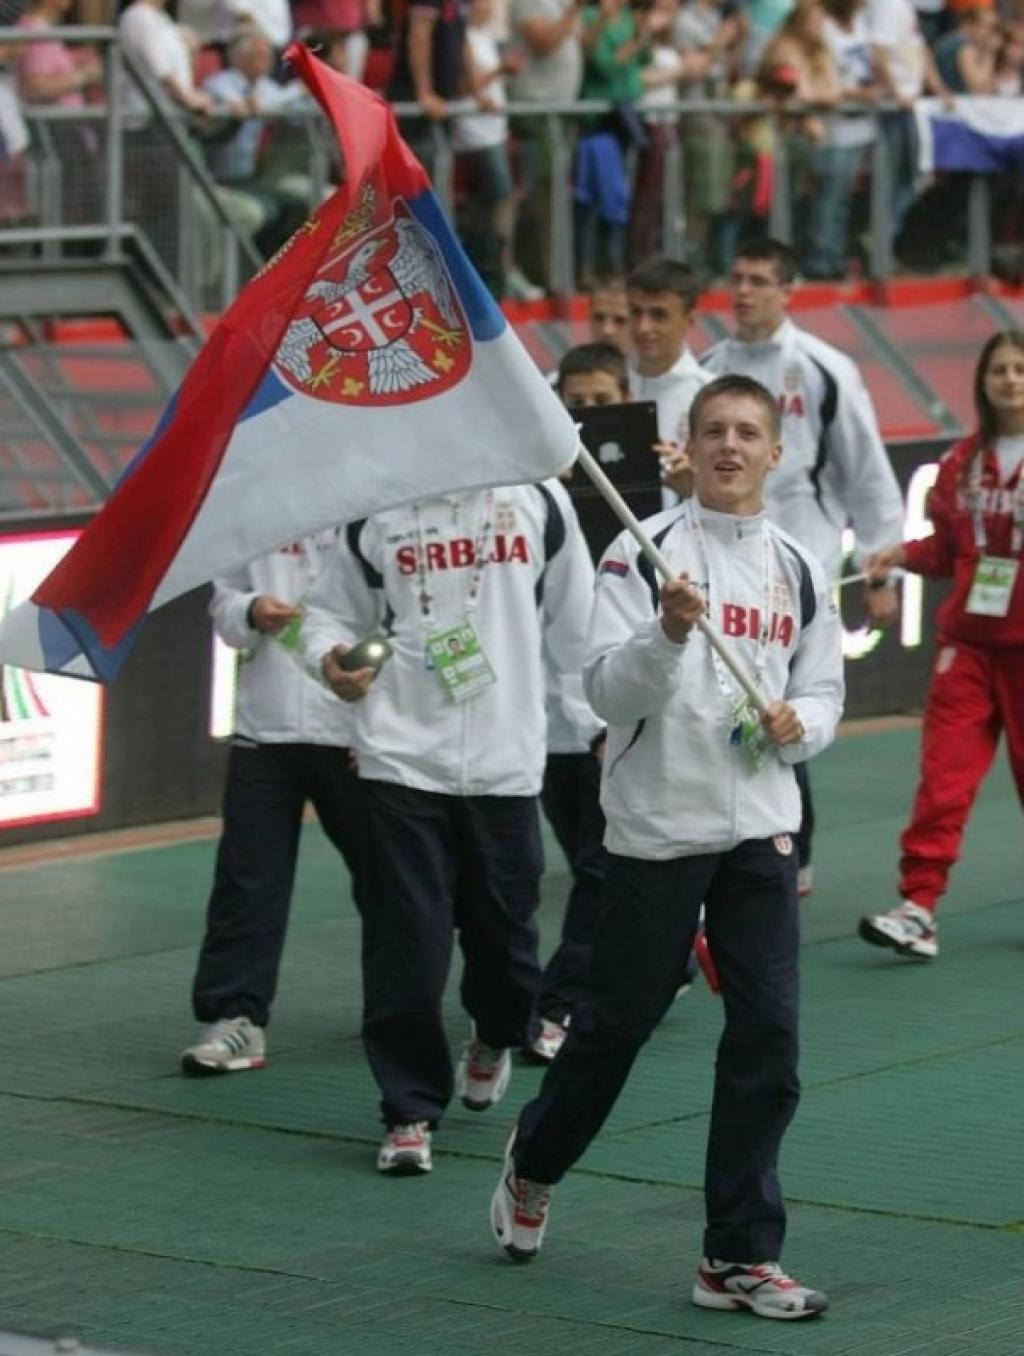 Judo has prominent role at opening ceremony of EYOF Utrecht